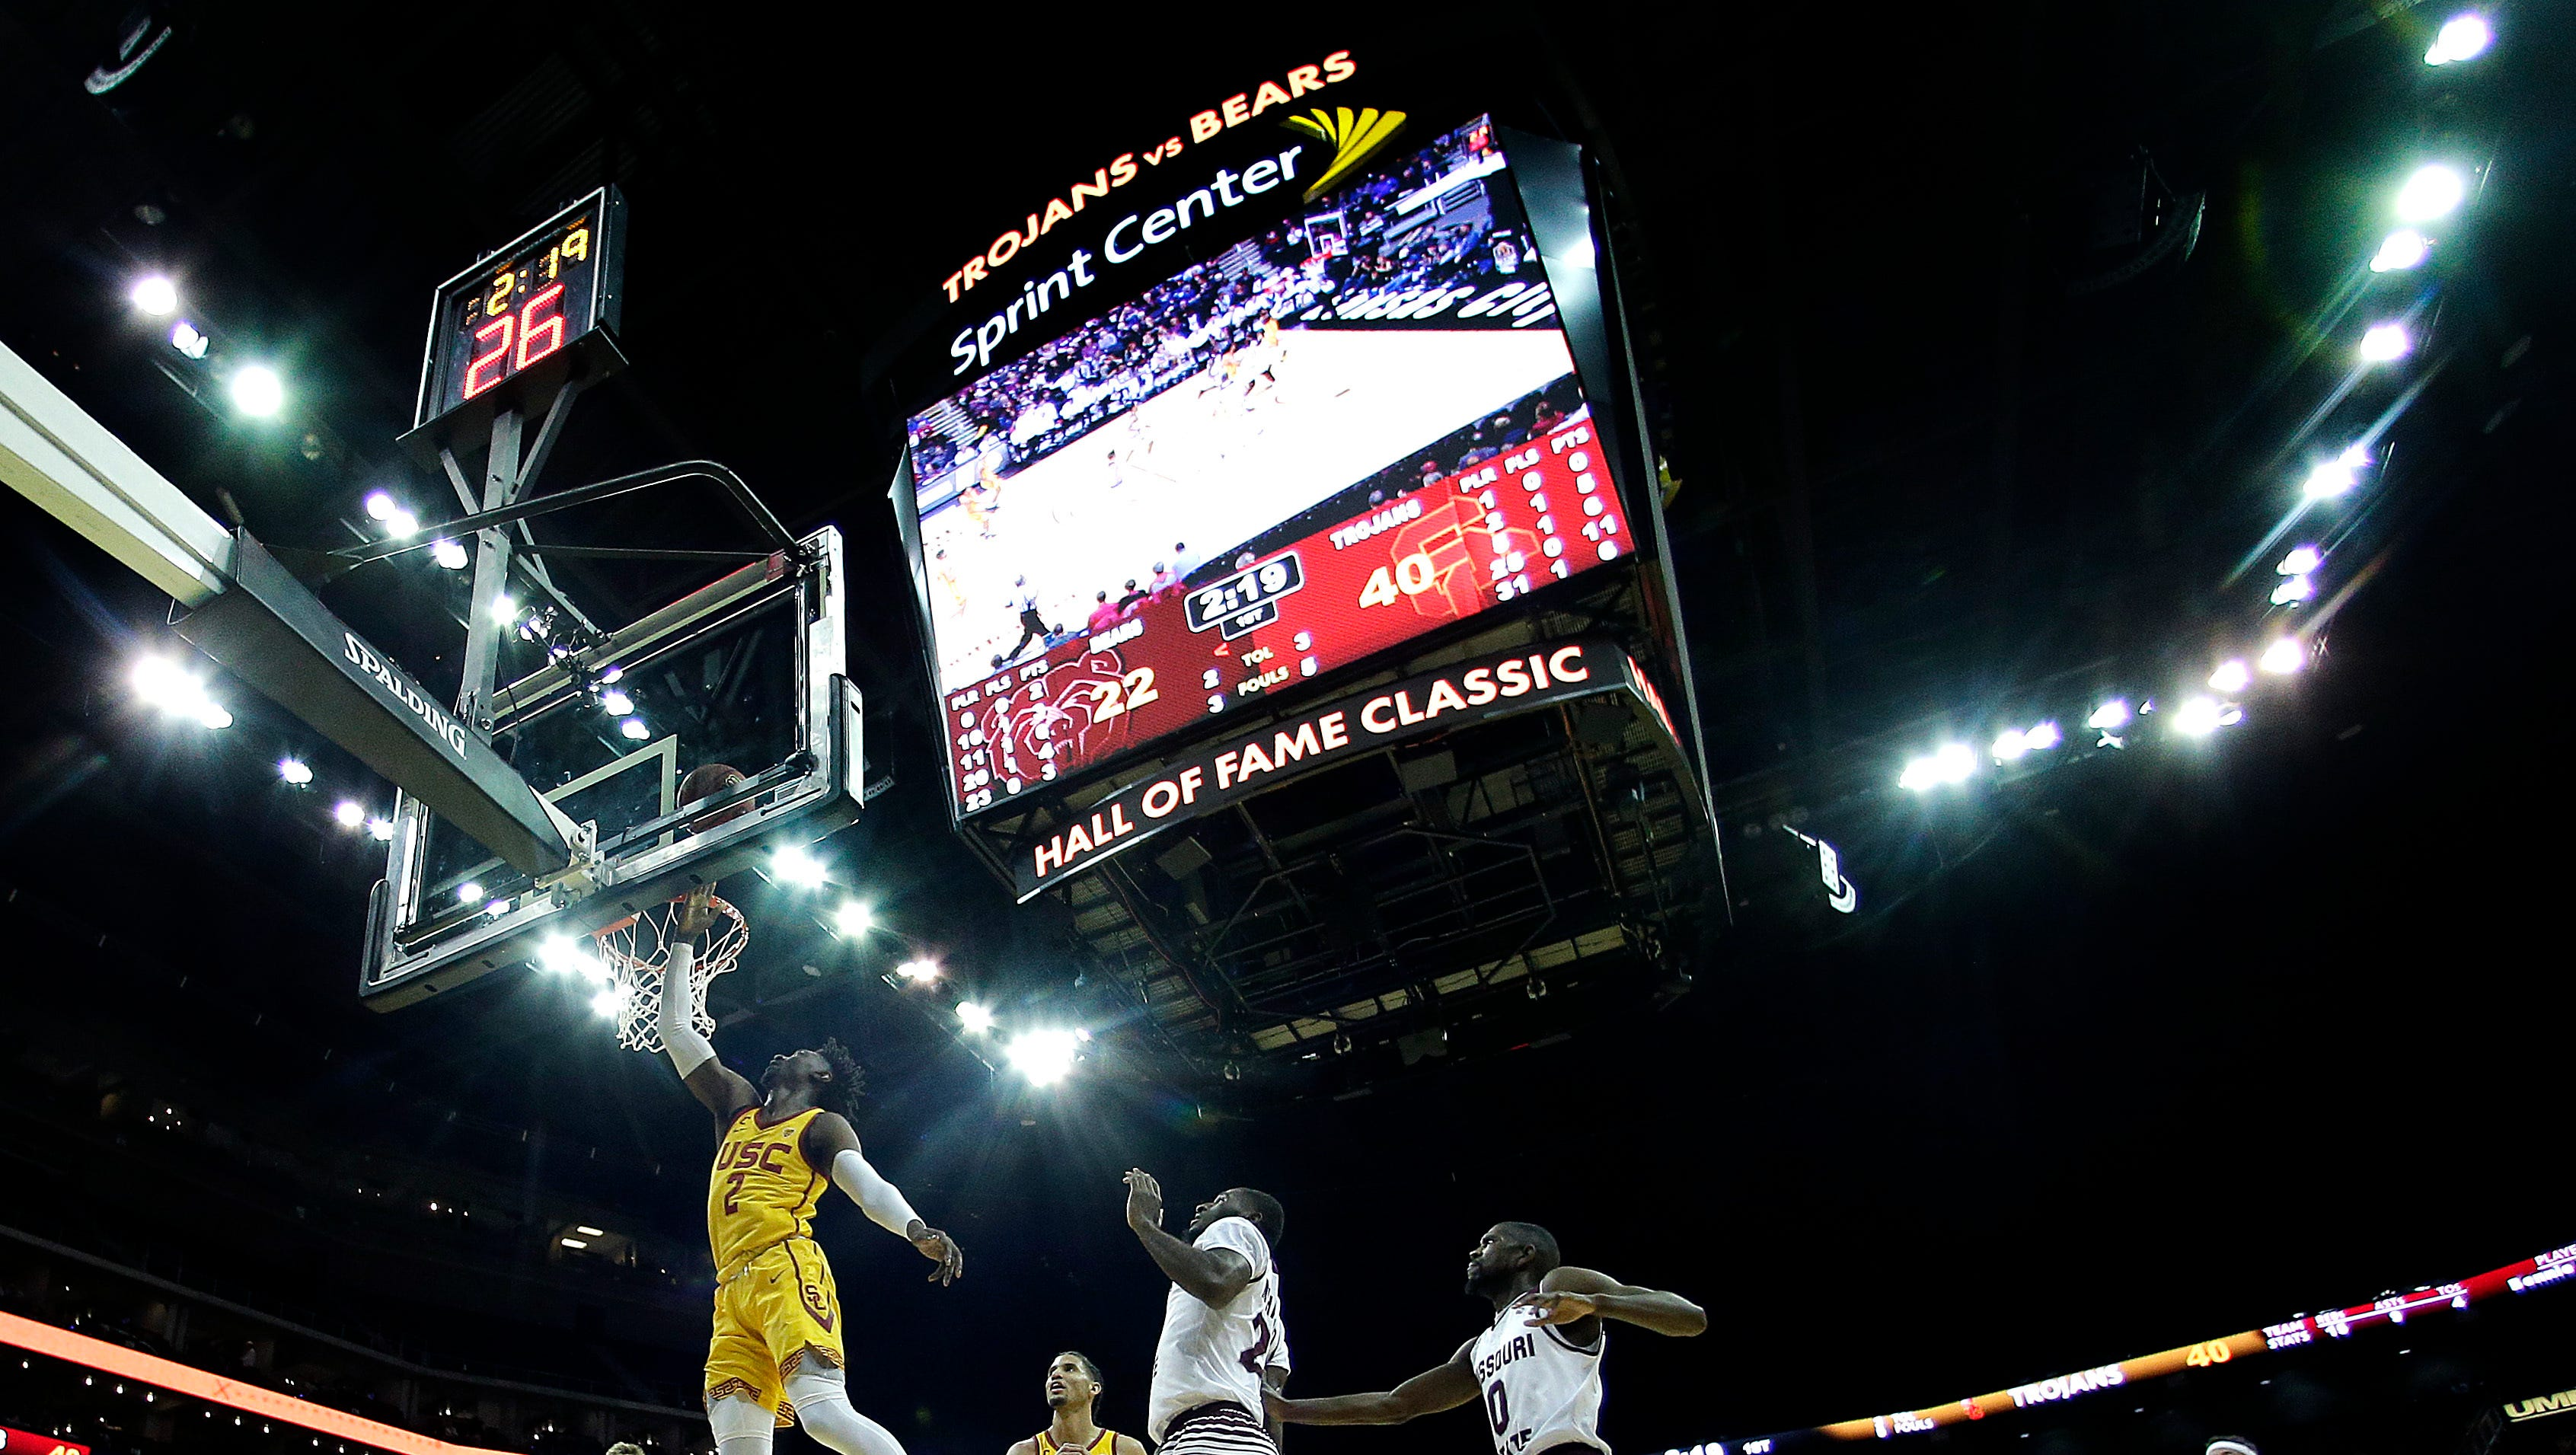 Southern California's Jonah Mathews (2) dunks the ball during the first half of an NCAA college basketball game against Missouri State Tuesday, Nov. 20, 2018, in Kansas City, Mo. (AP Photo/Charlie Riedel)